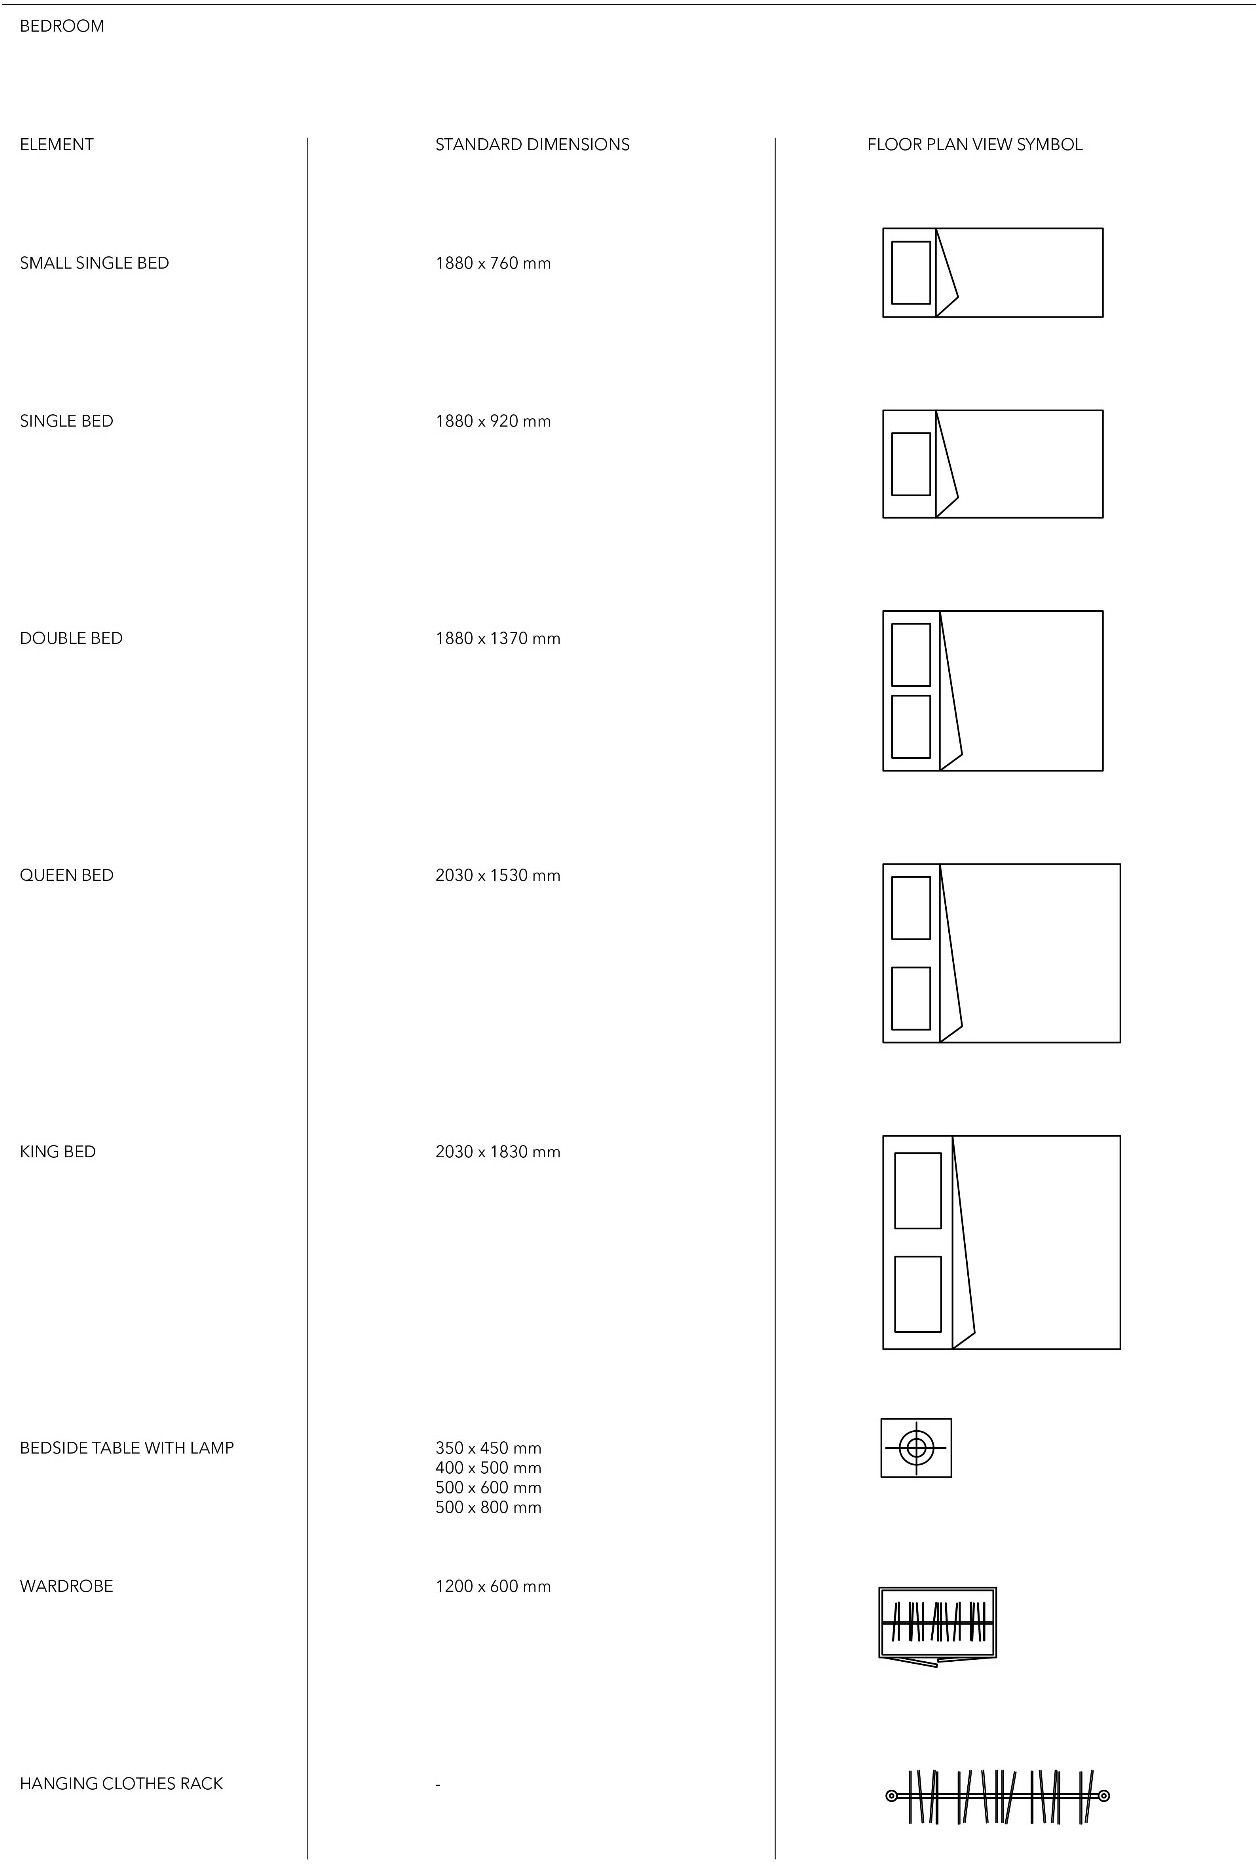 Floor Plan View Furniture Symbols Symbols Pinterest Interiors